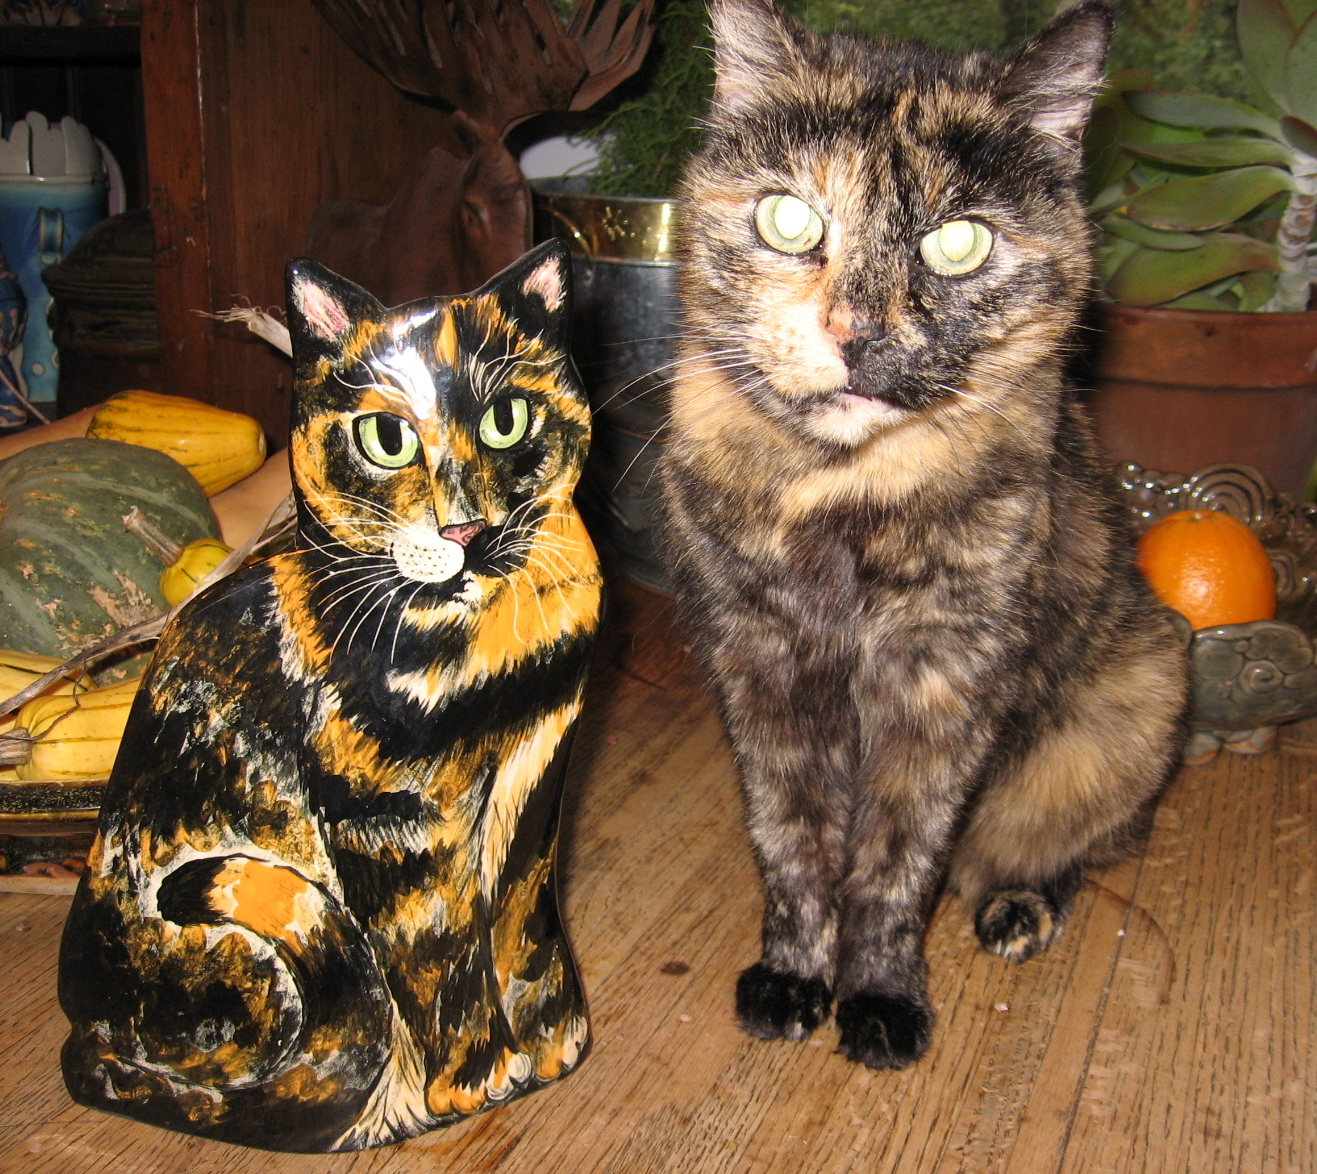 Simons blog mom likes to go visit her grandsonian and play games they play all sorts of games but cards are a favorite ians cat bangle who is a bengal cat reviewsmspy